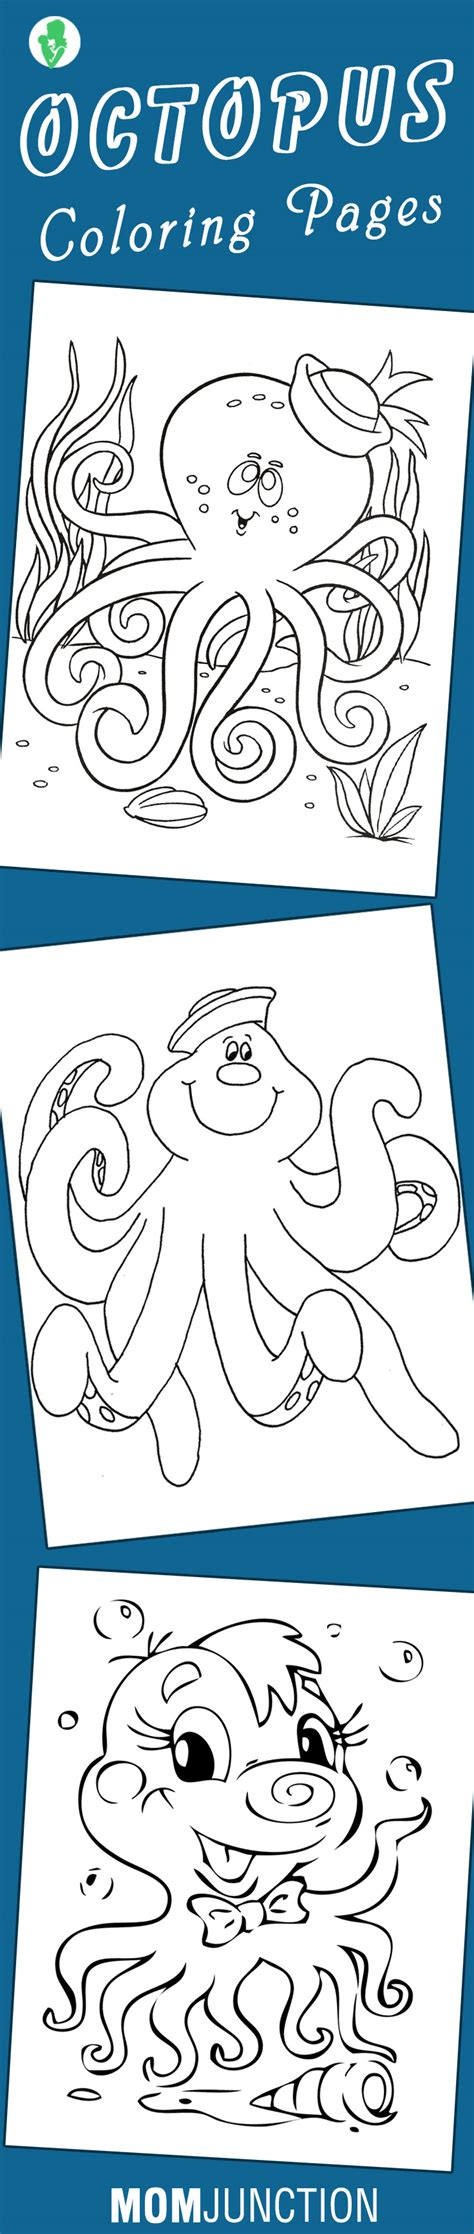 top   printable octopus coloring pages